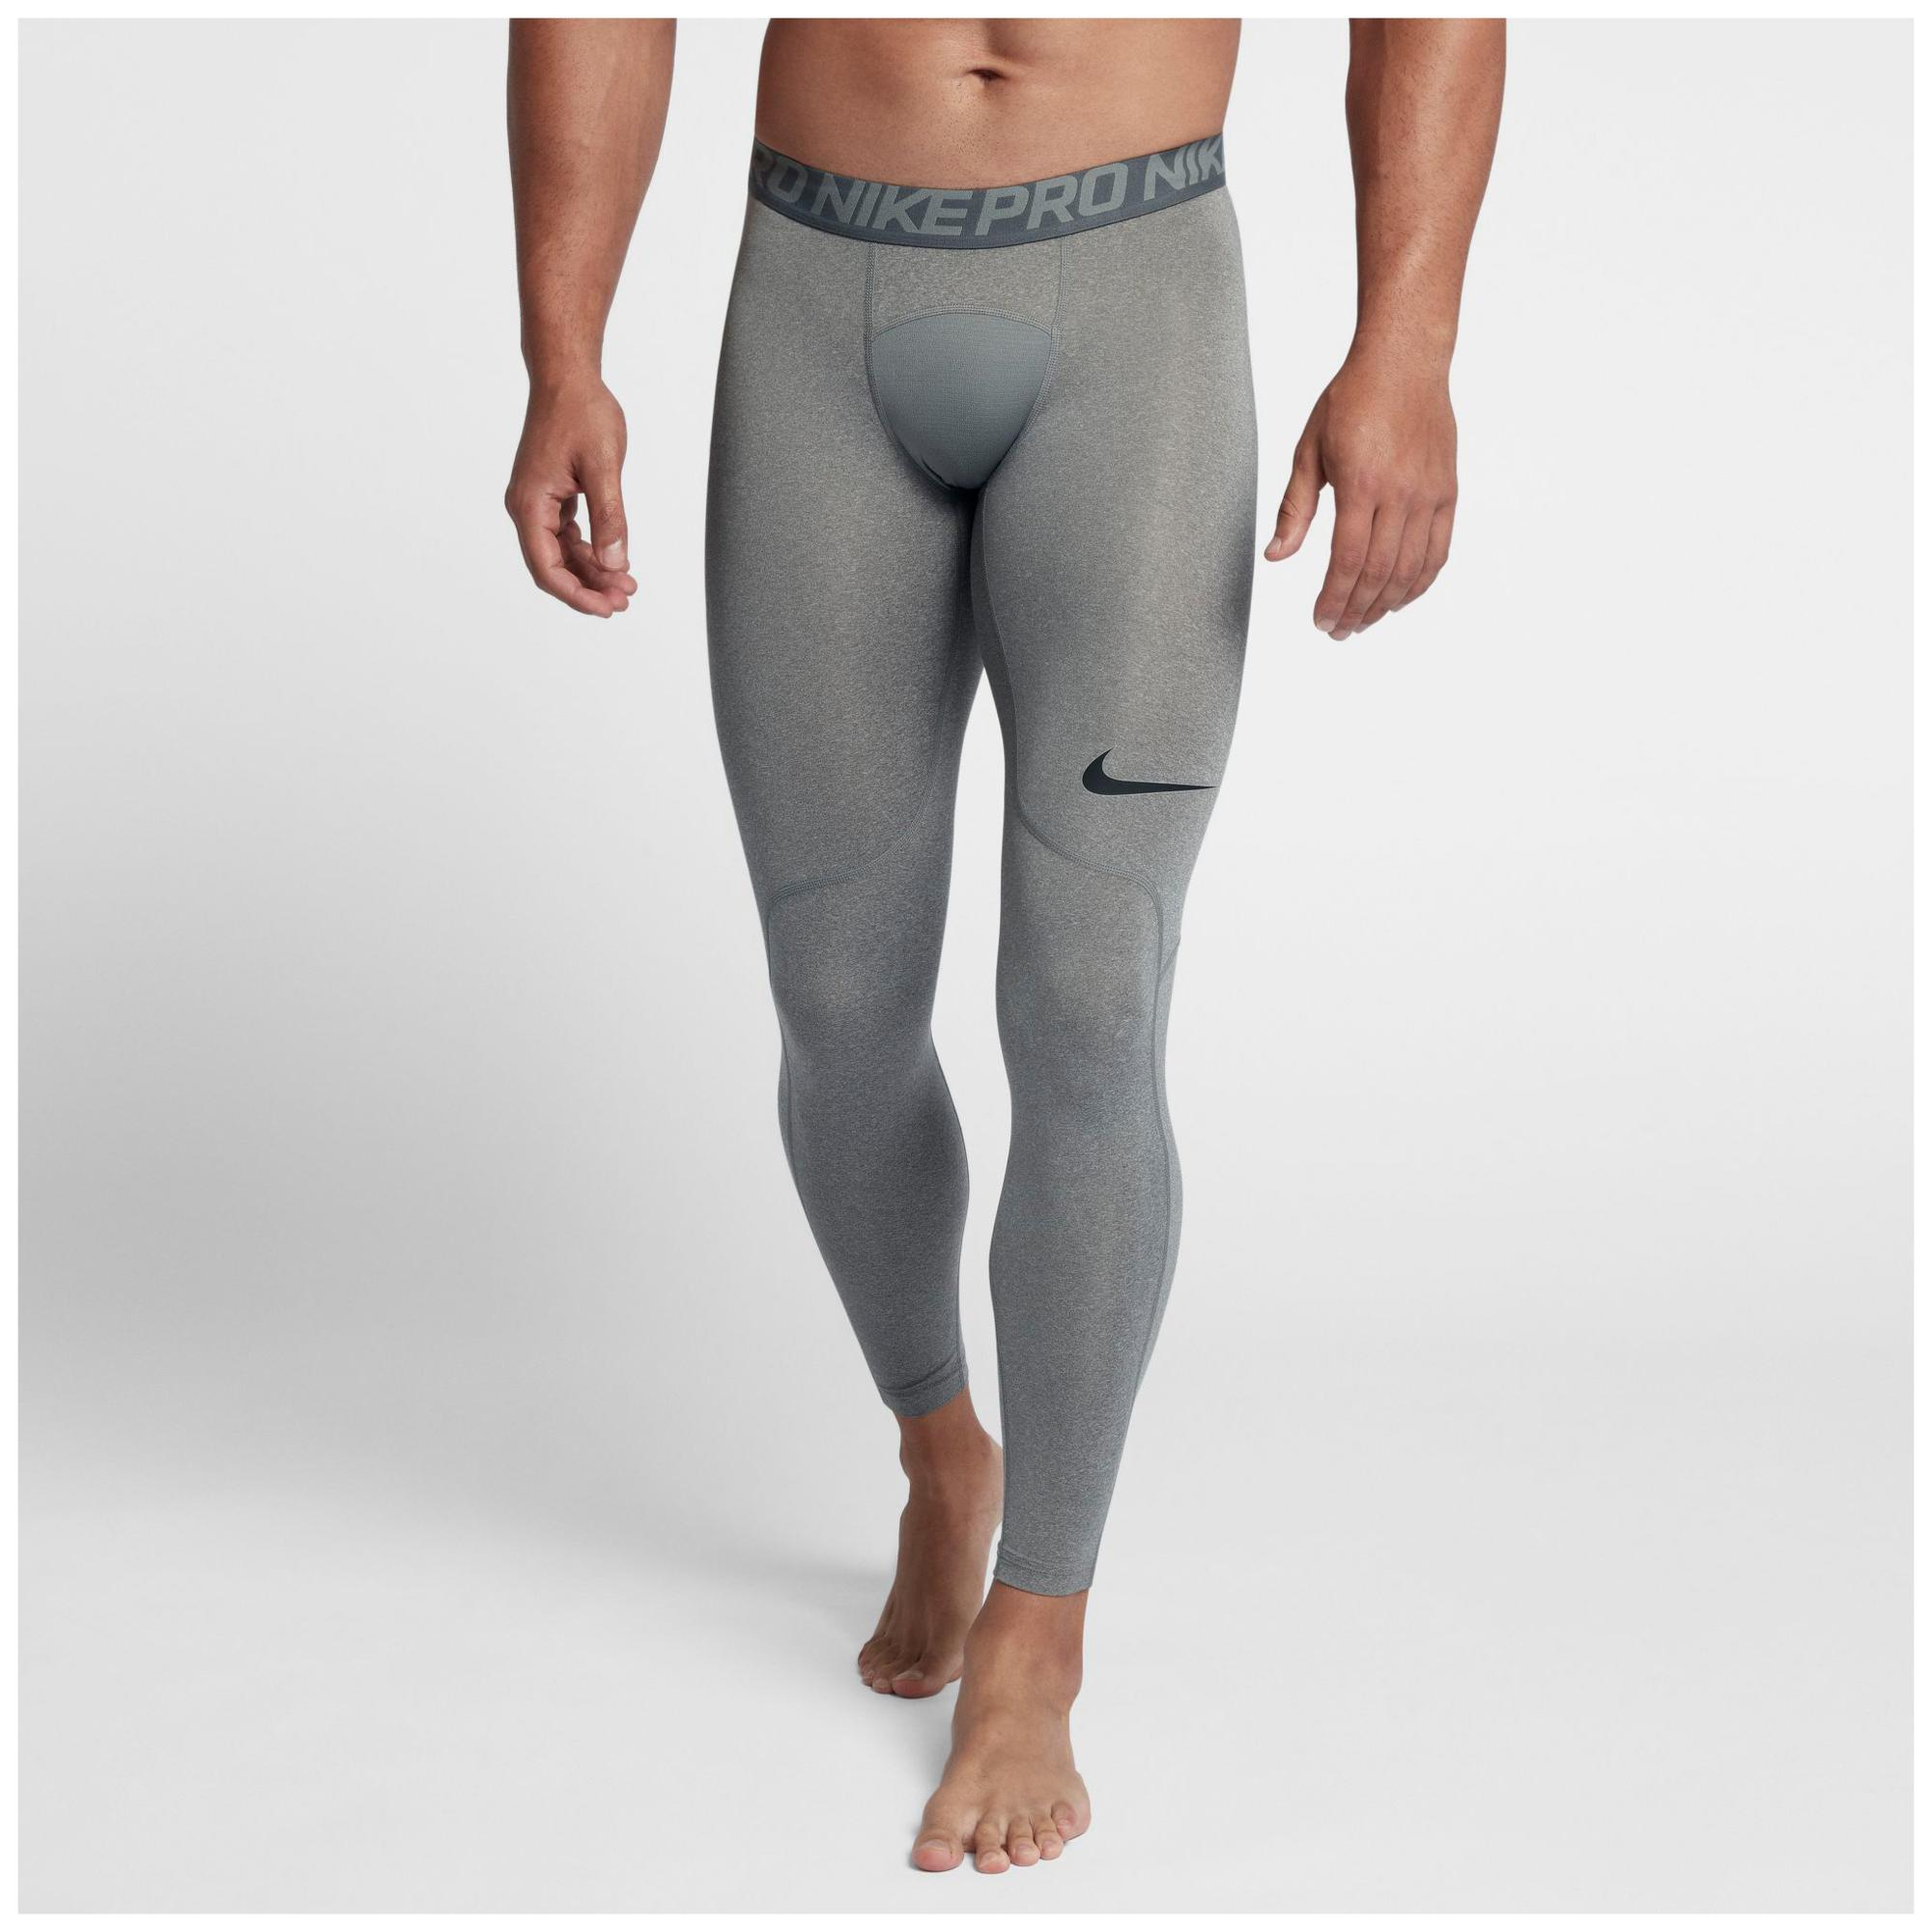 6fd01f992b173 Nike Pro Compression Tights in Gray for Men - Lyst